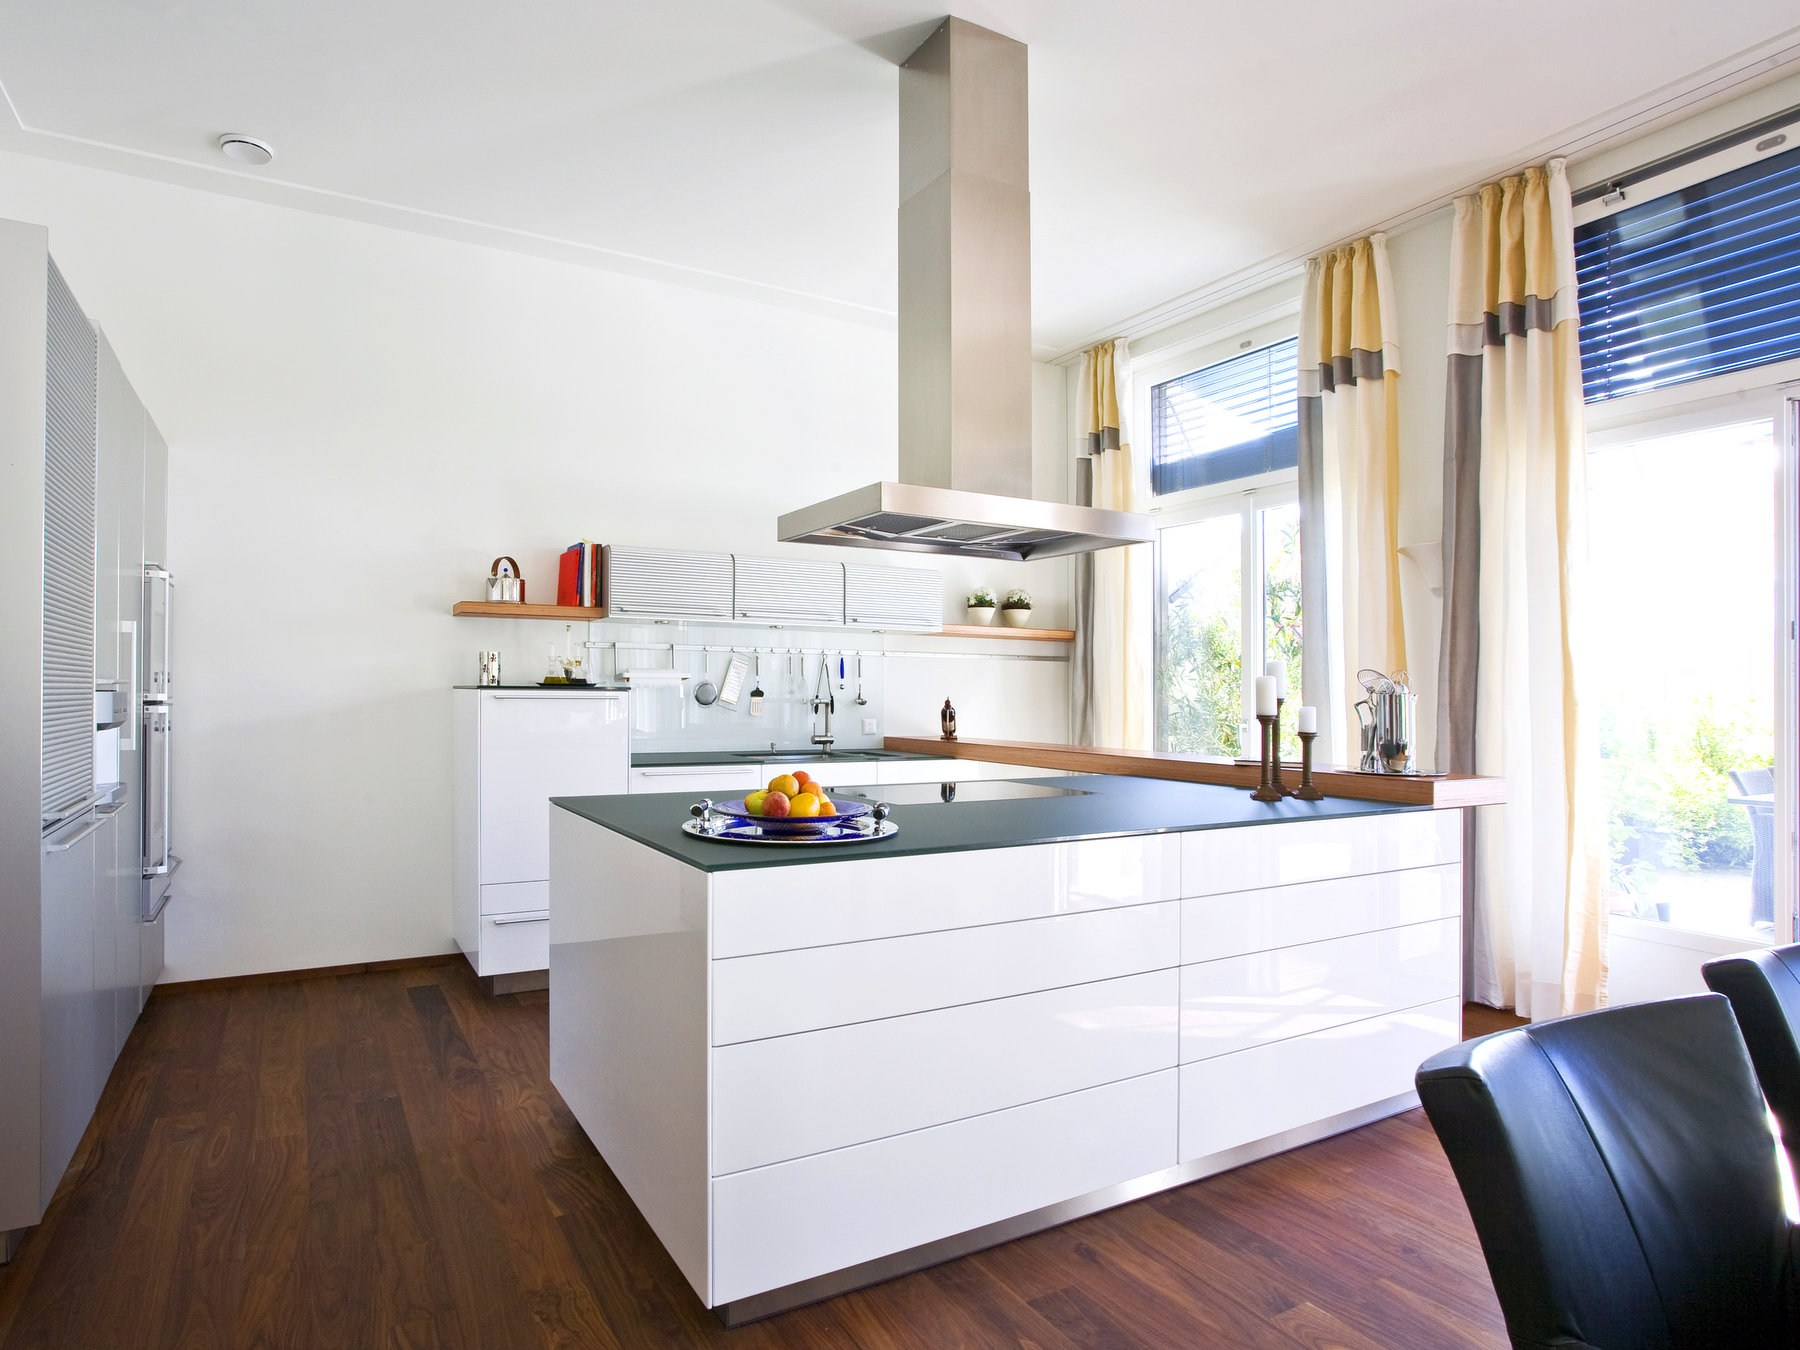 B3 lacquered kitchen by bulthaup - Cuisine bulthaup ...